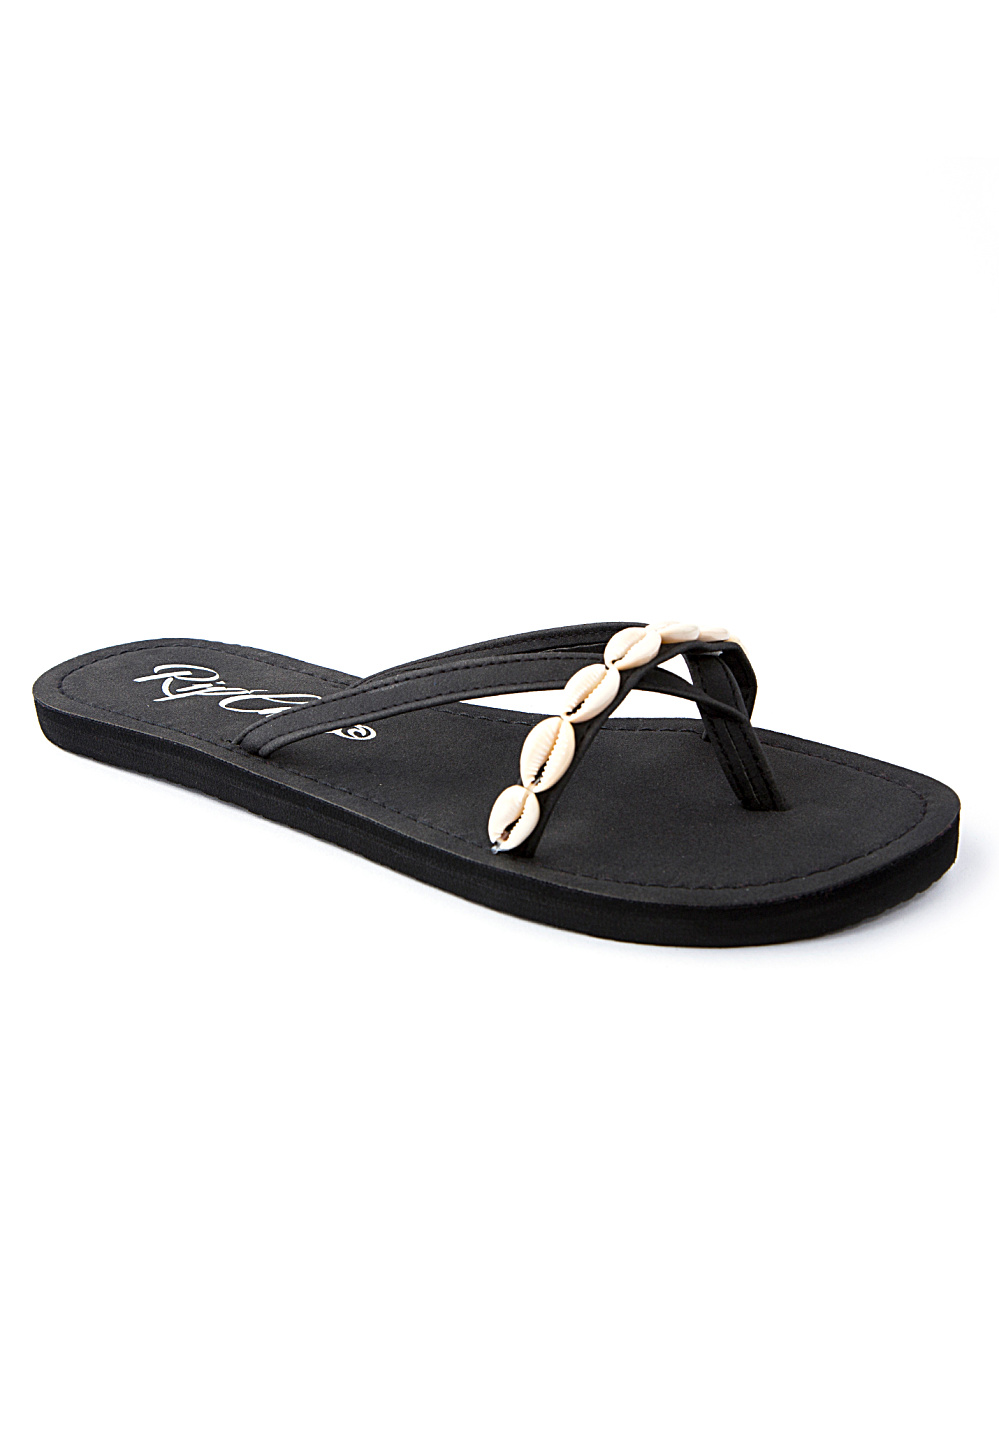 Rip Curl Coco Sandals Women Hd8VnzHrMl